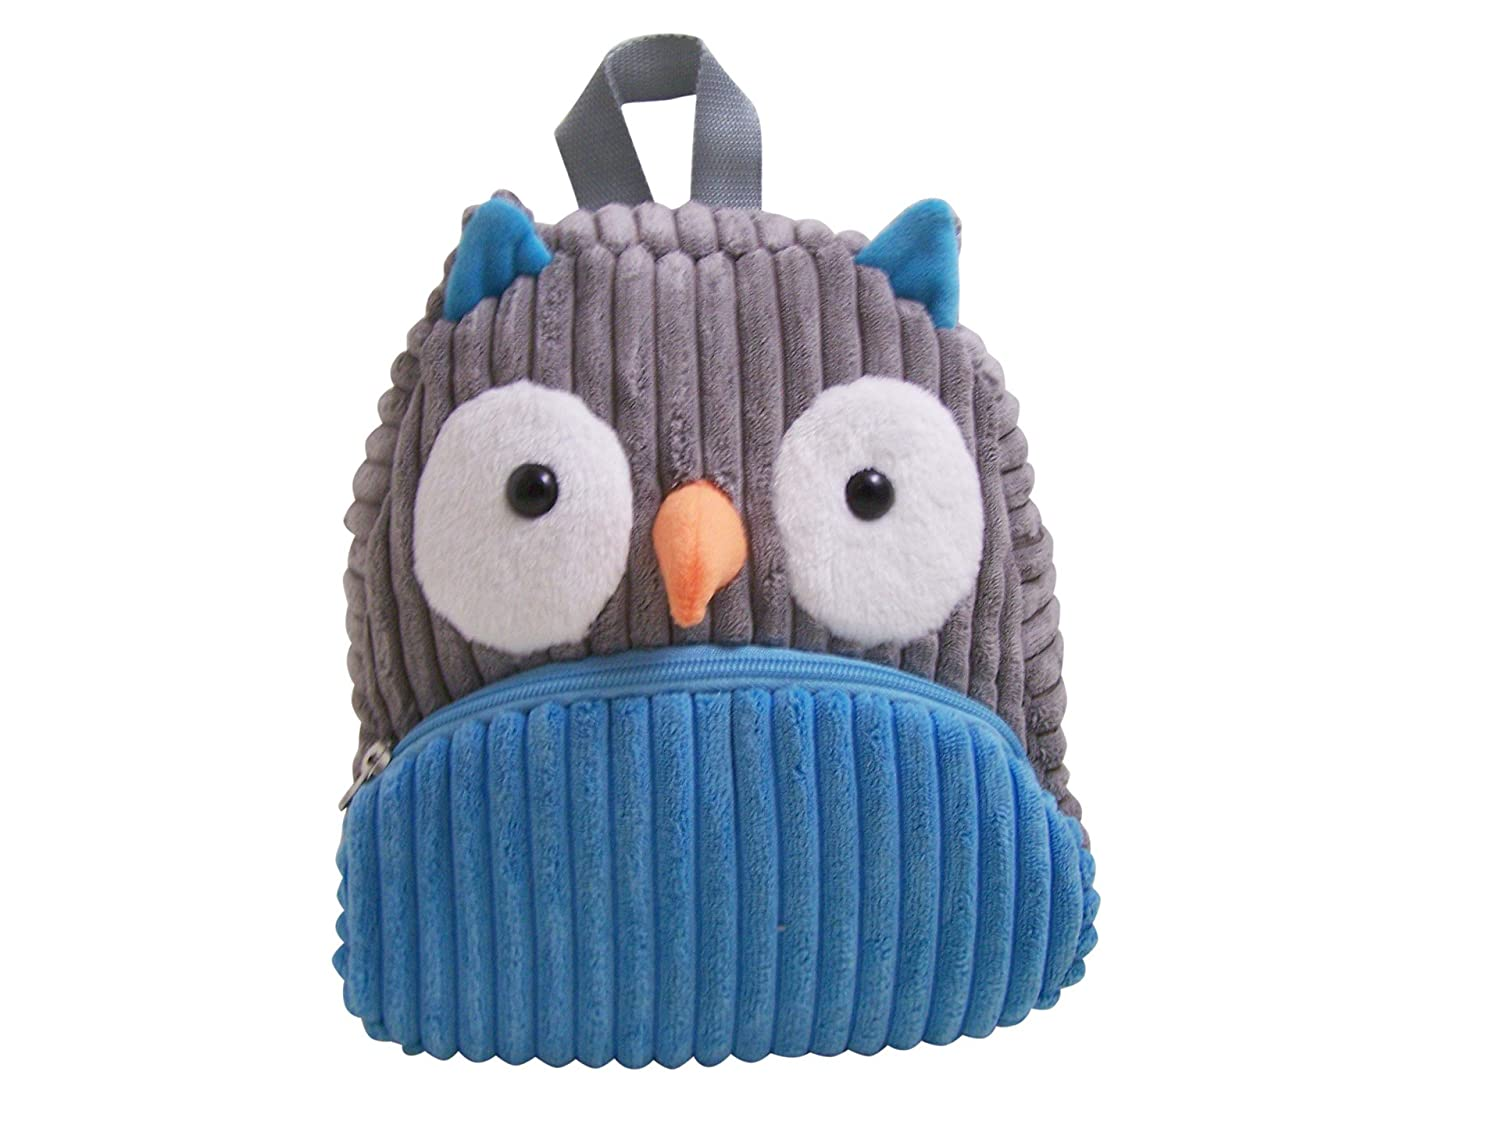 Sassafras / CuddlePack Corduroy Backpack, Owl